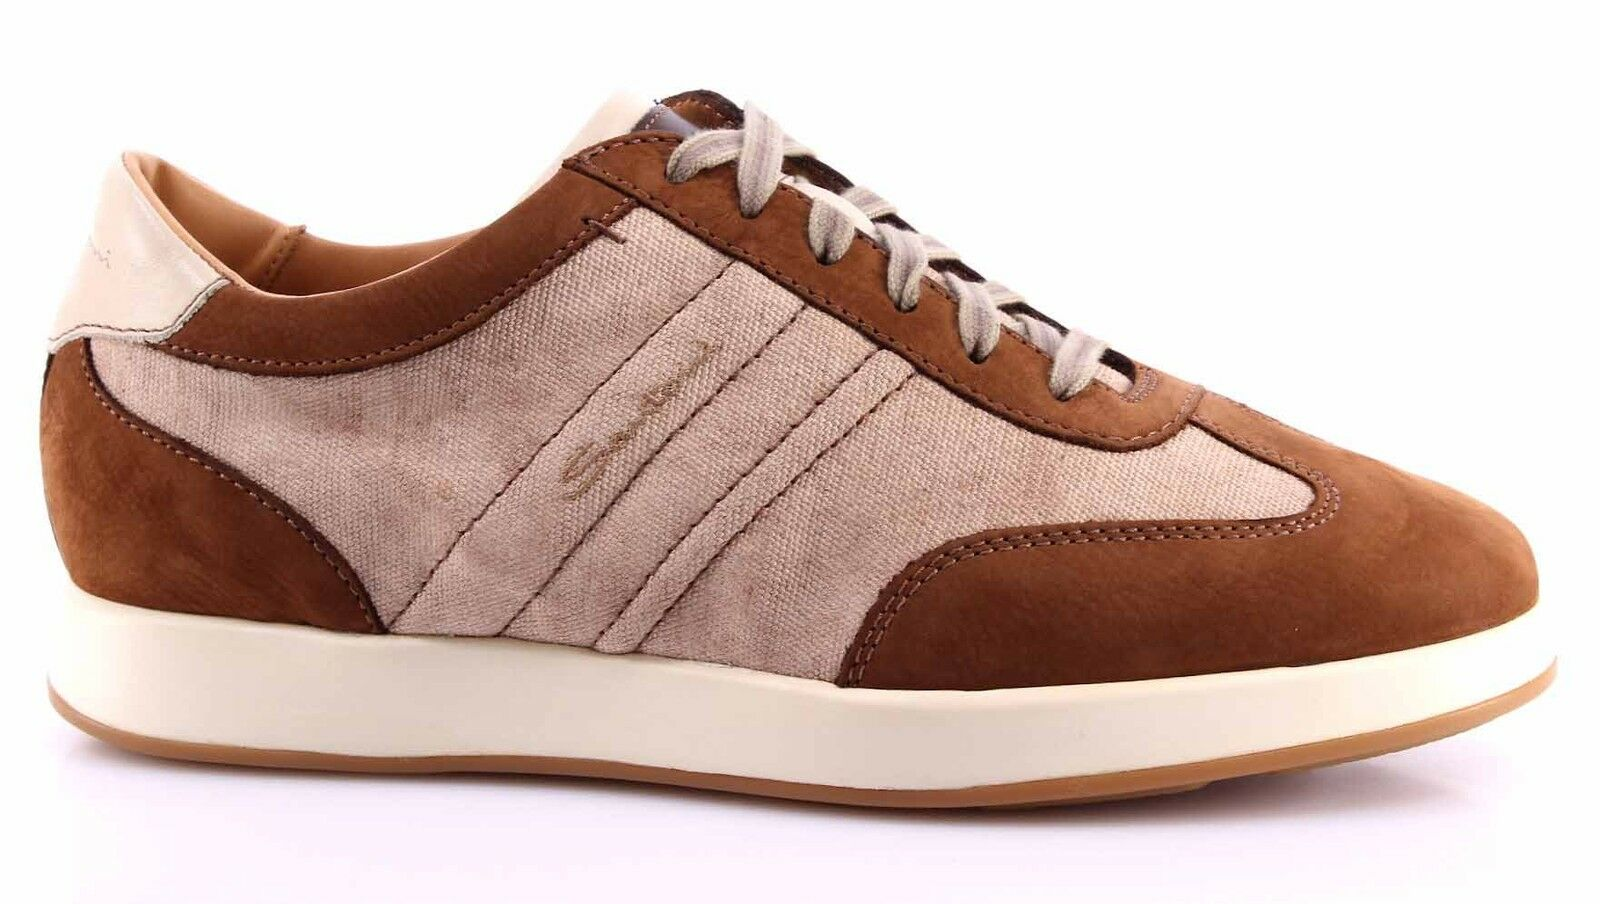 Men's Shoes Sneakers SANTONI Beige Brown Top Quality Luxury Made In Italy New